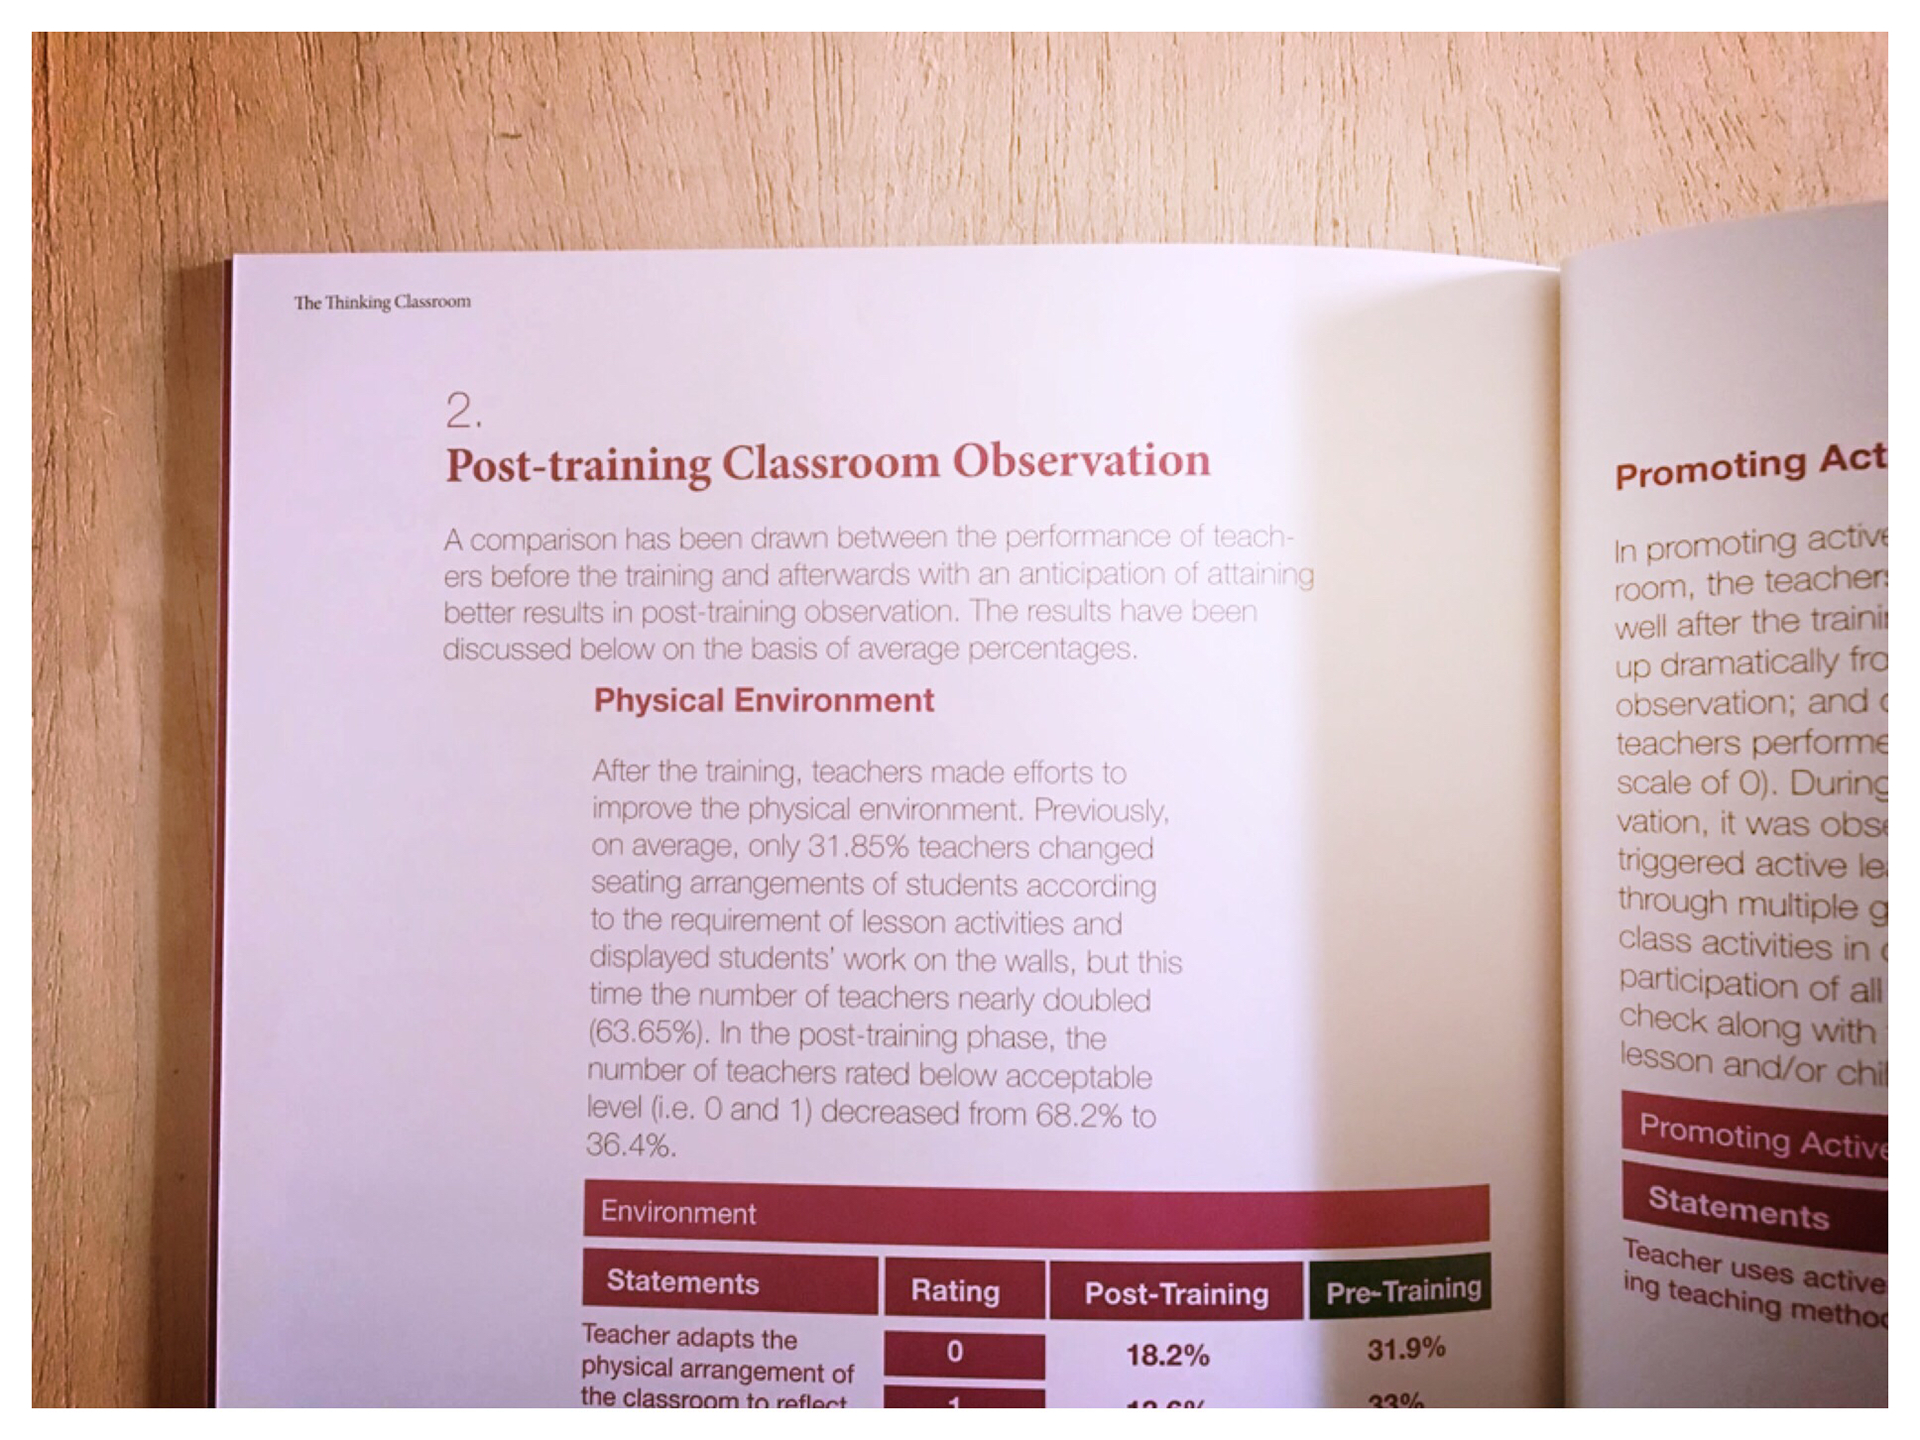 The Thinking Classroom | Publication Design on Behance